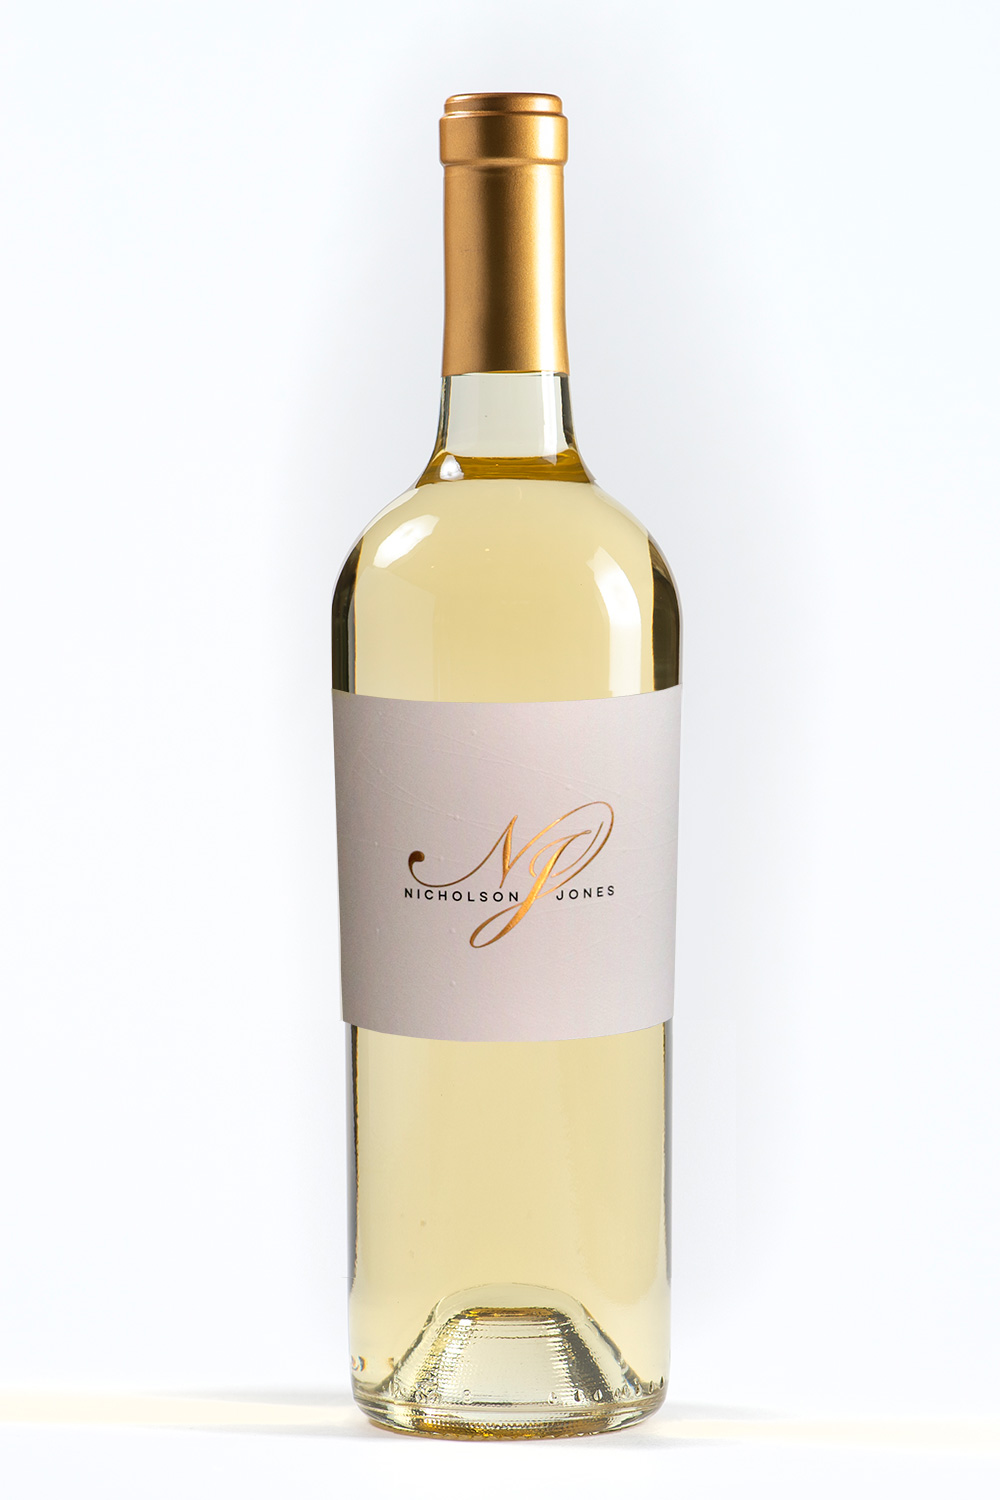 2019 Nicholson Jones Sauvignon Blanc  - Nicholson Jones Selections